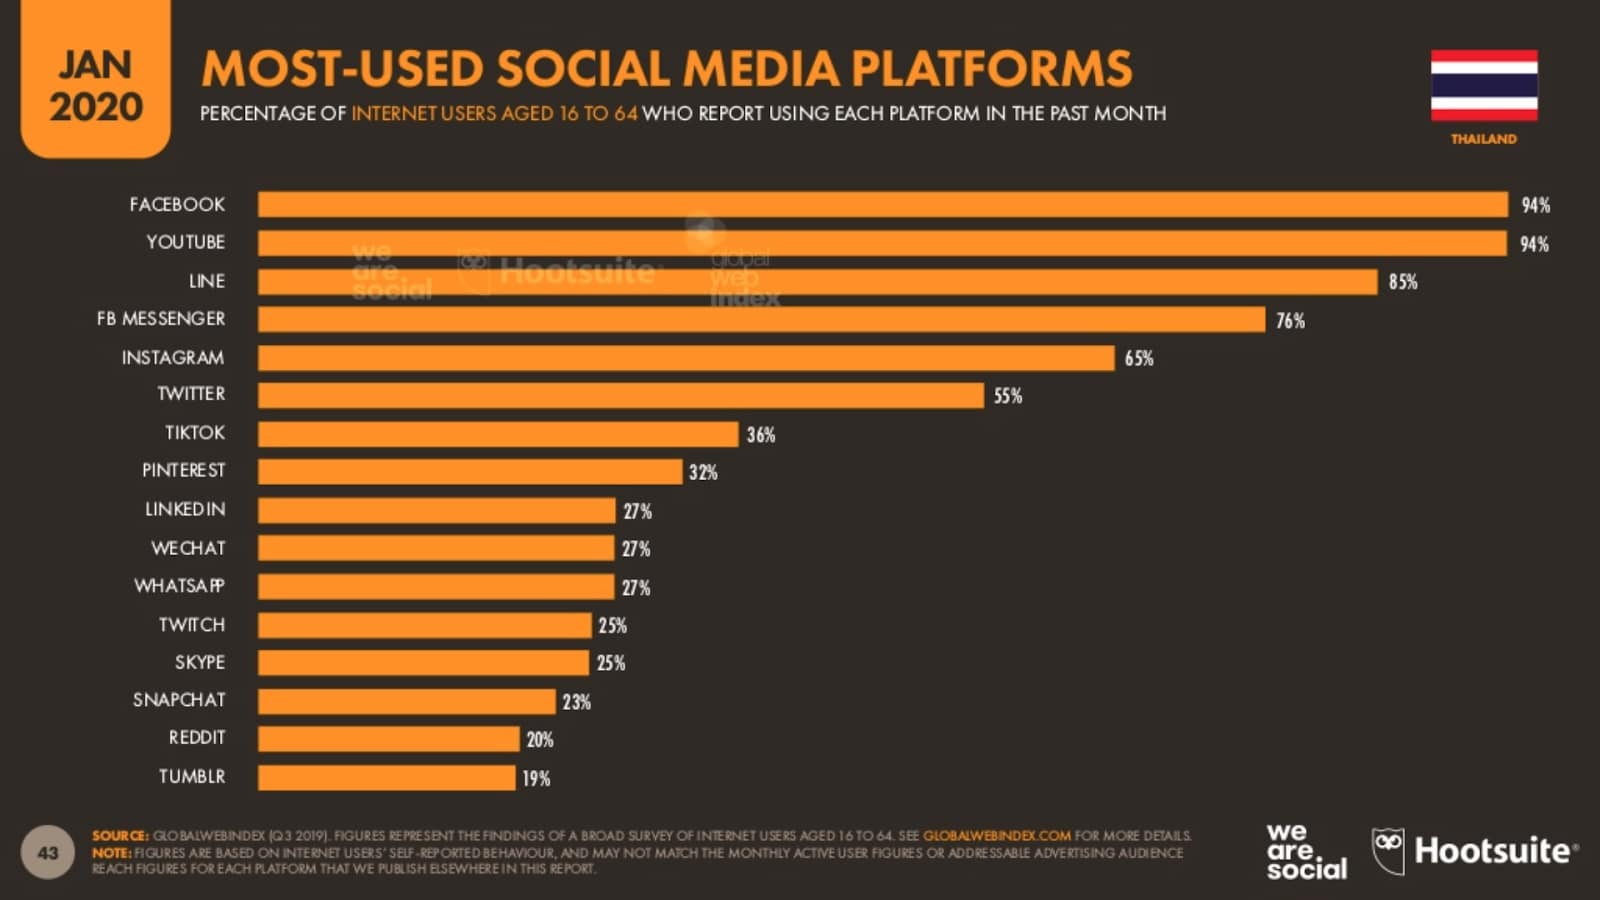 Most used social media platforms in Thailand